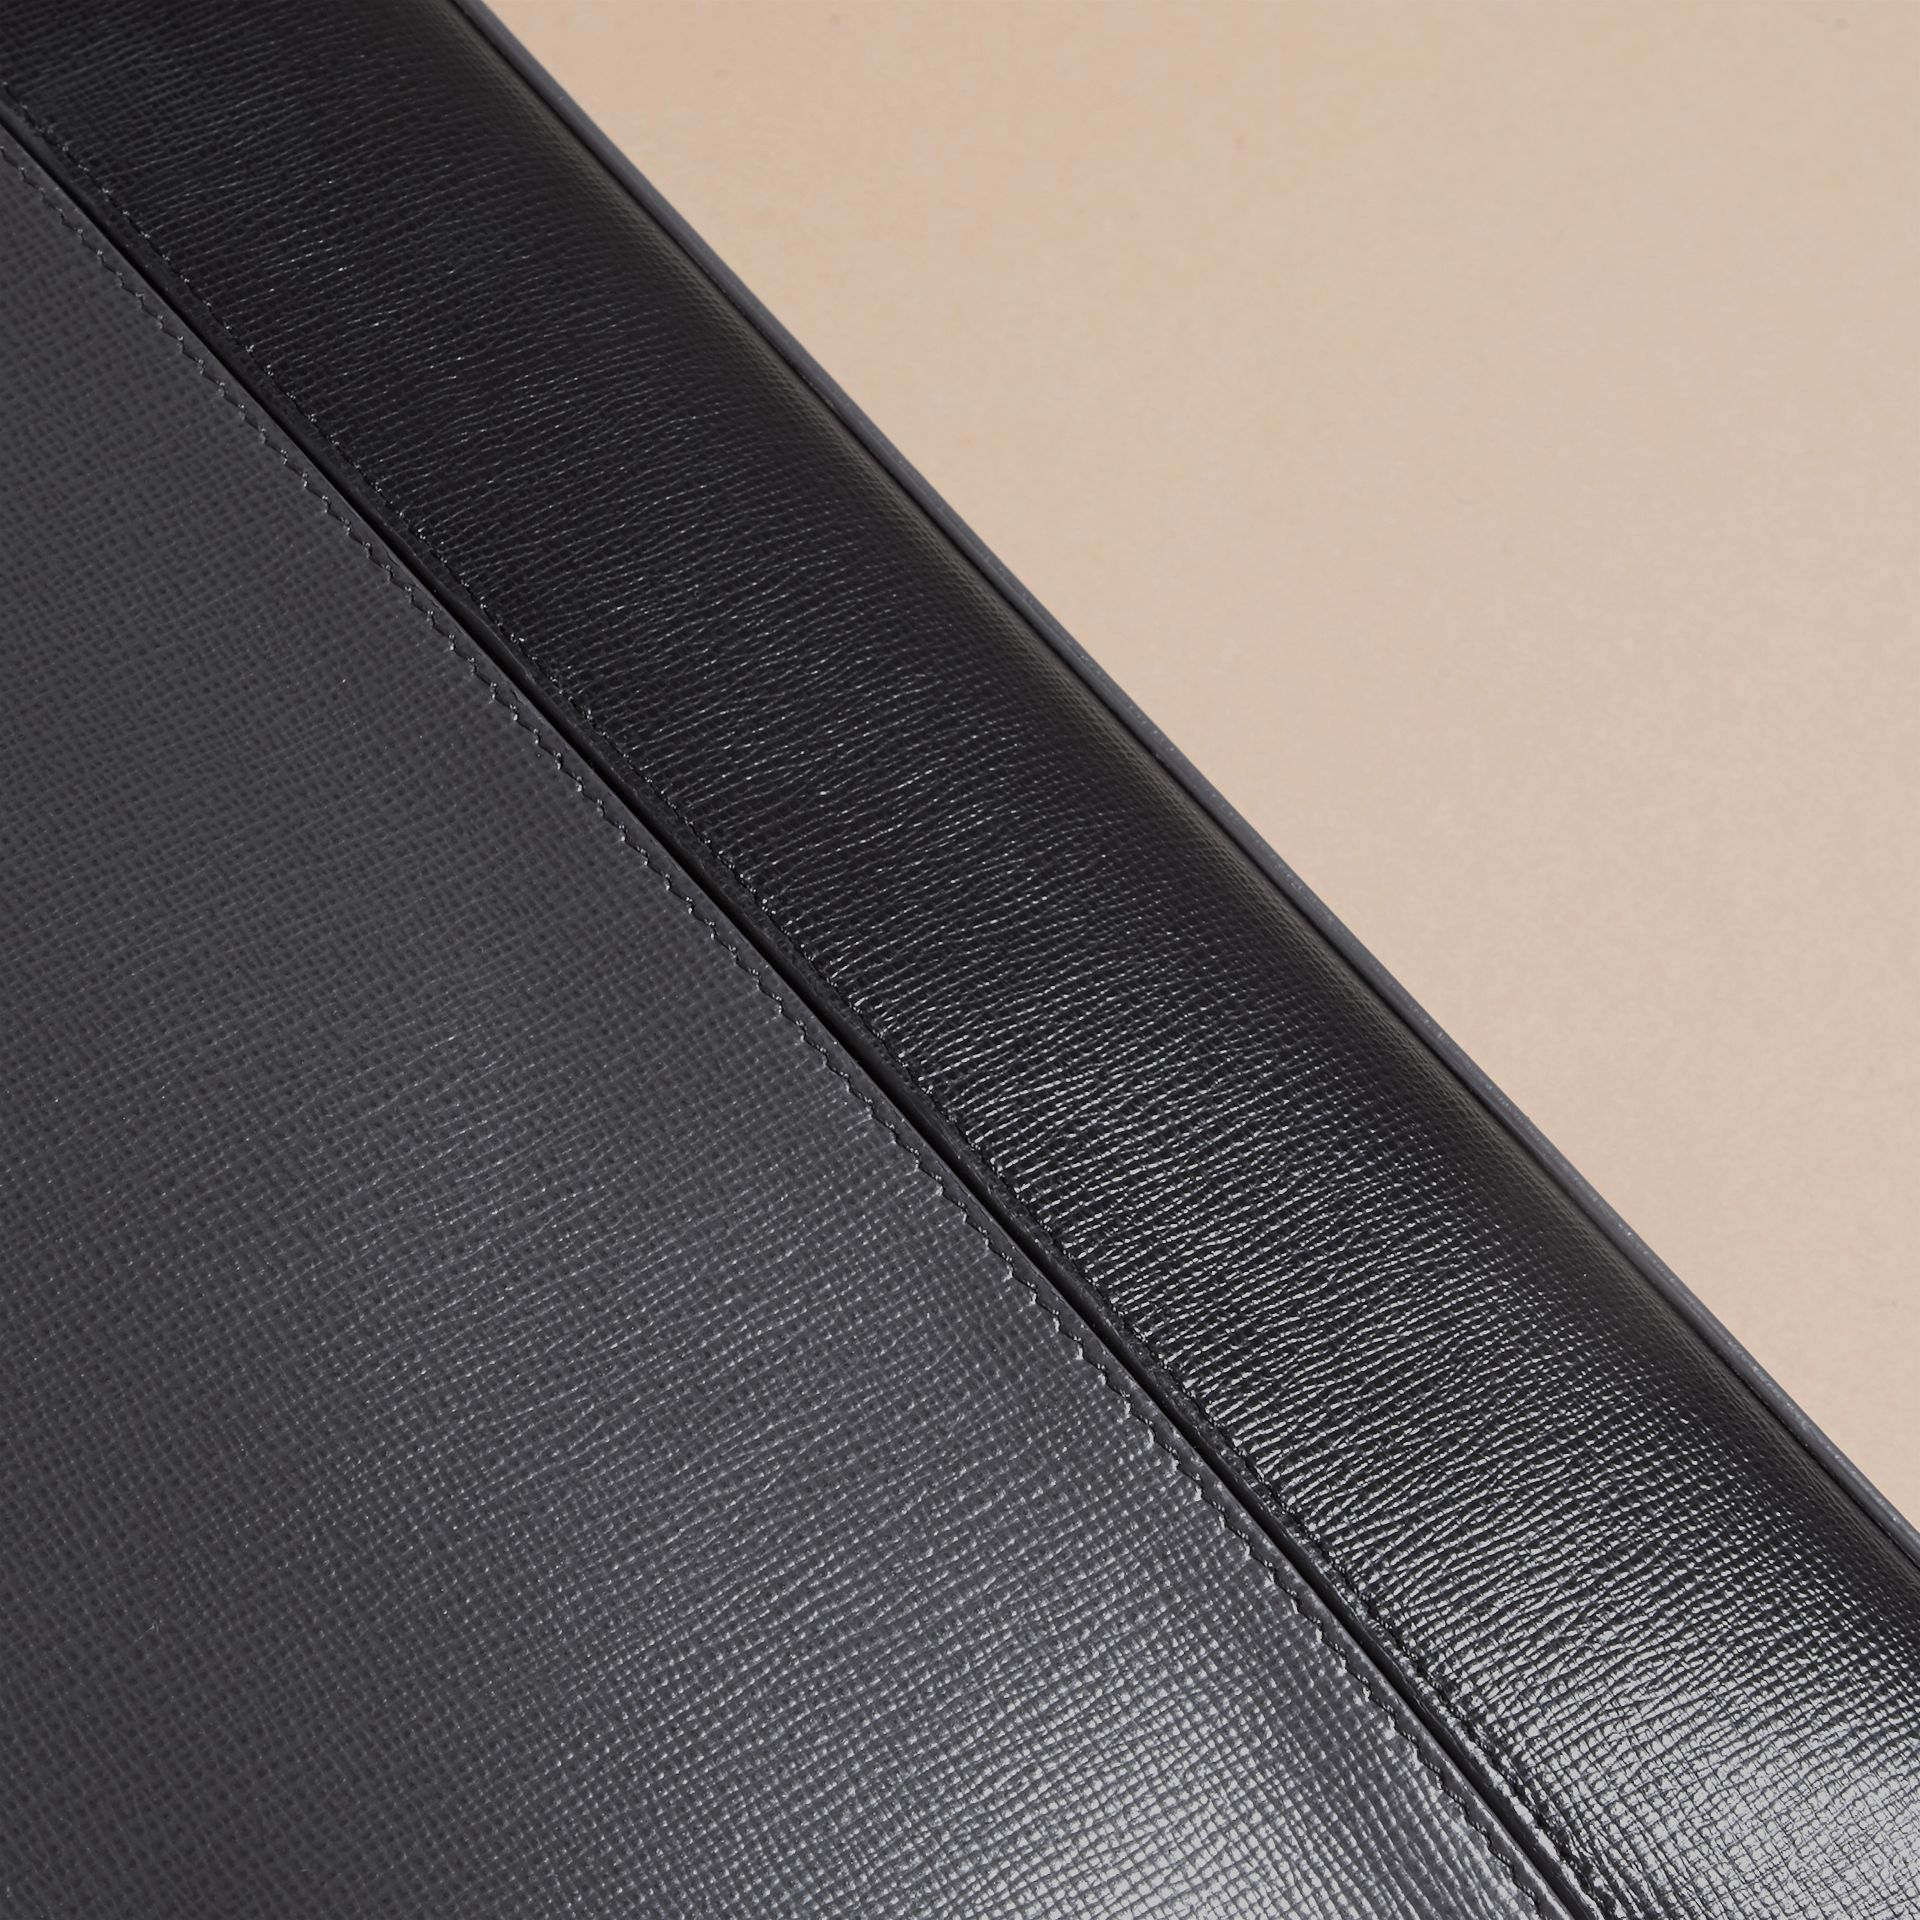 Charcoal/black The Slim Barrow in Panelled London Leather Charcoal/black - gallery image 6